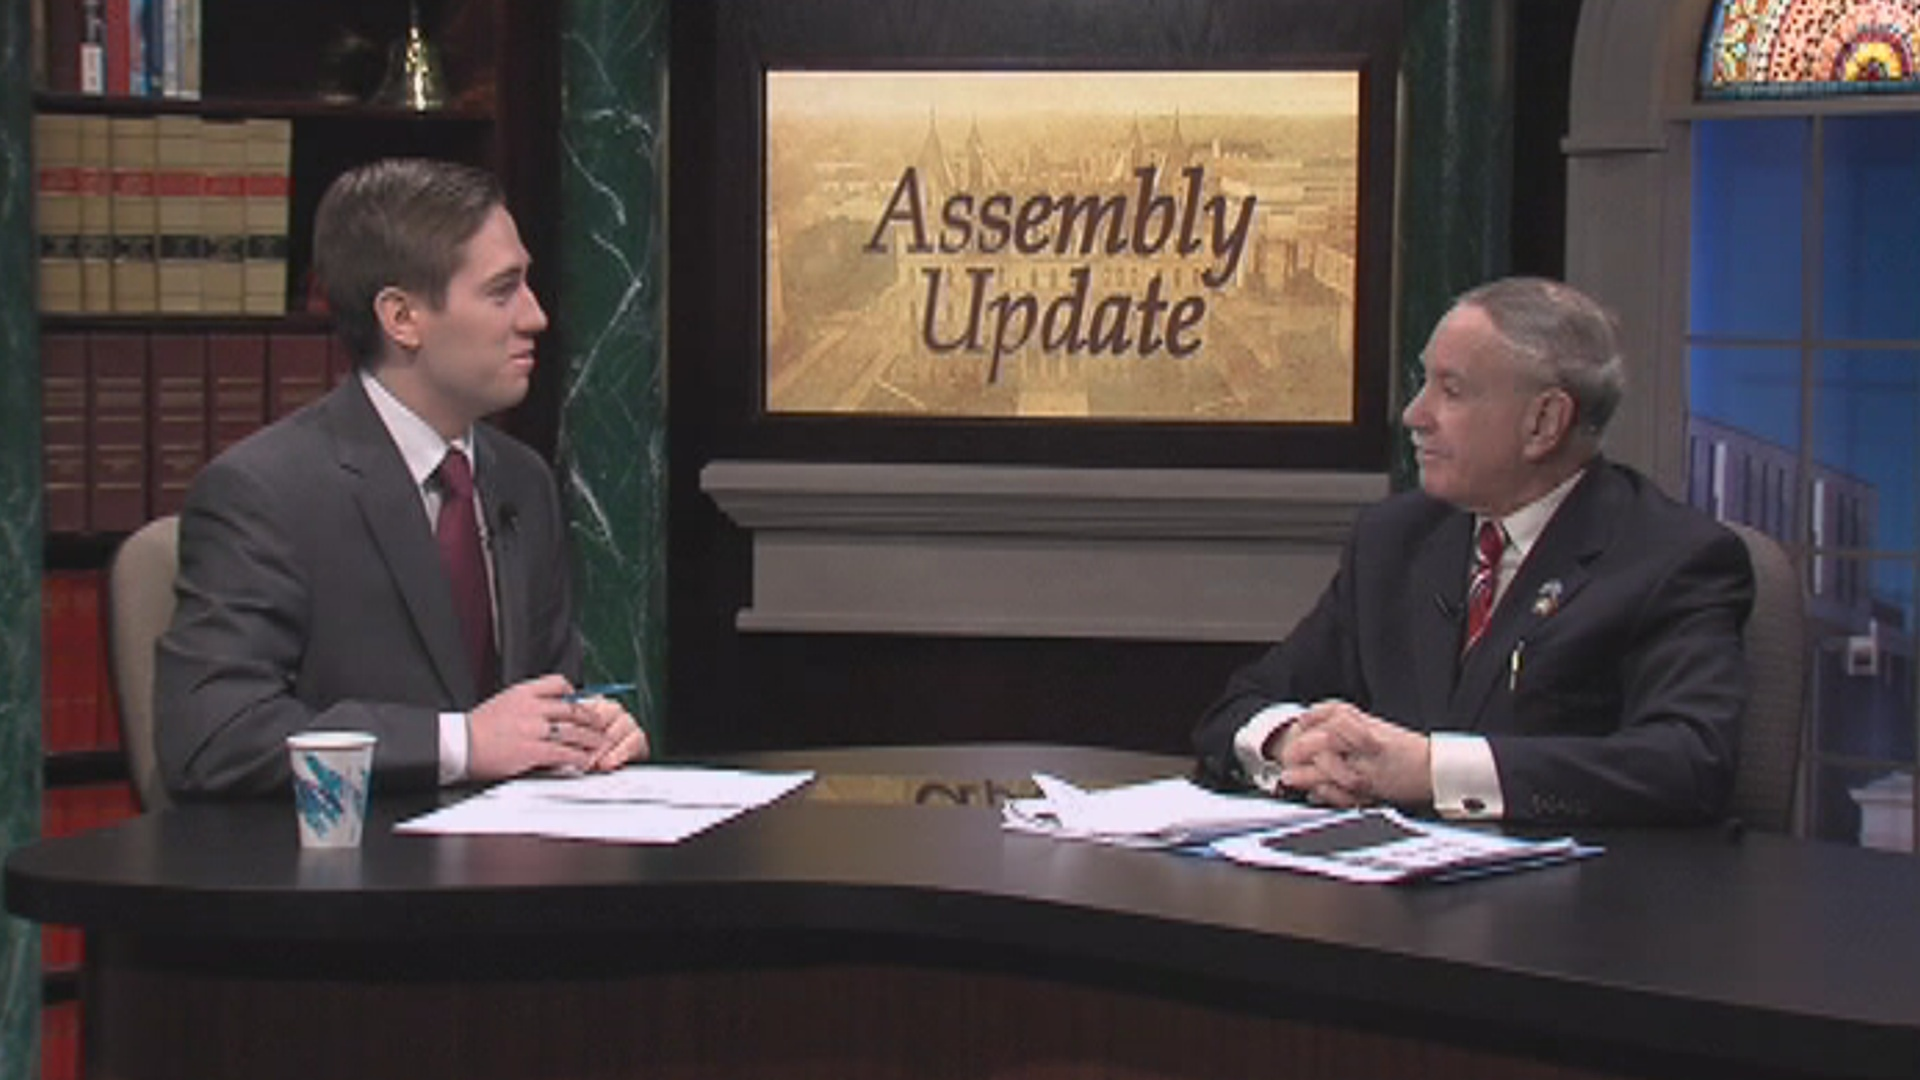 Assembly Update-The State of Public Education